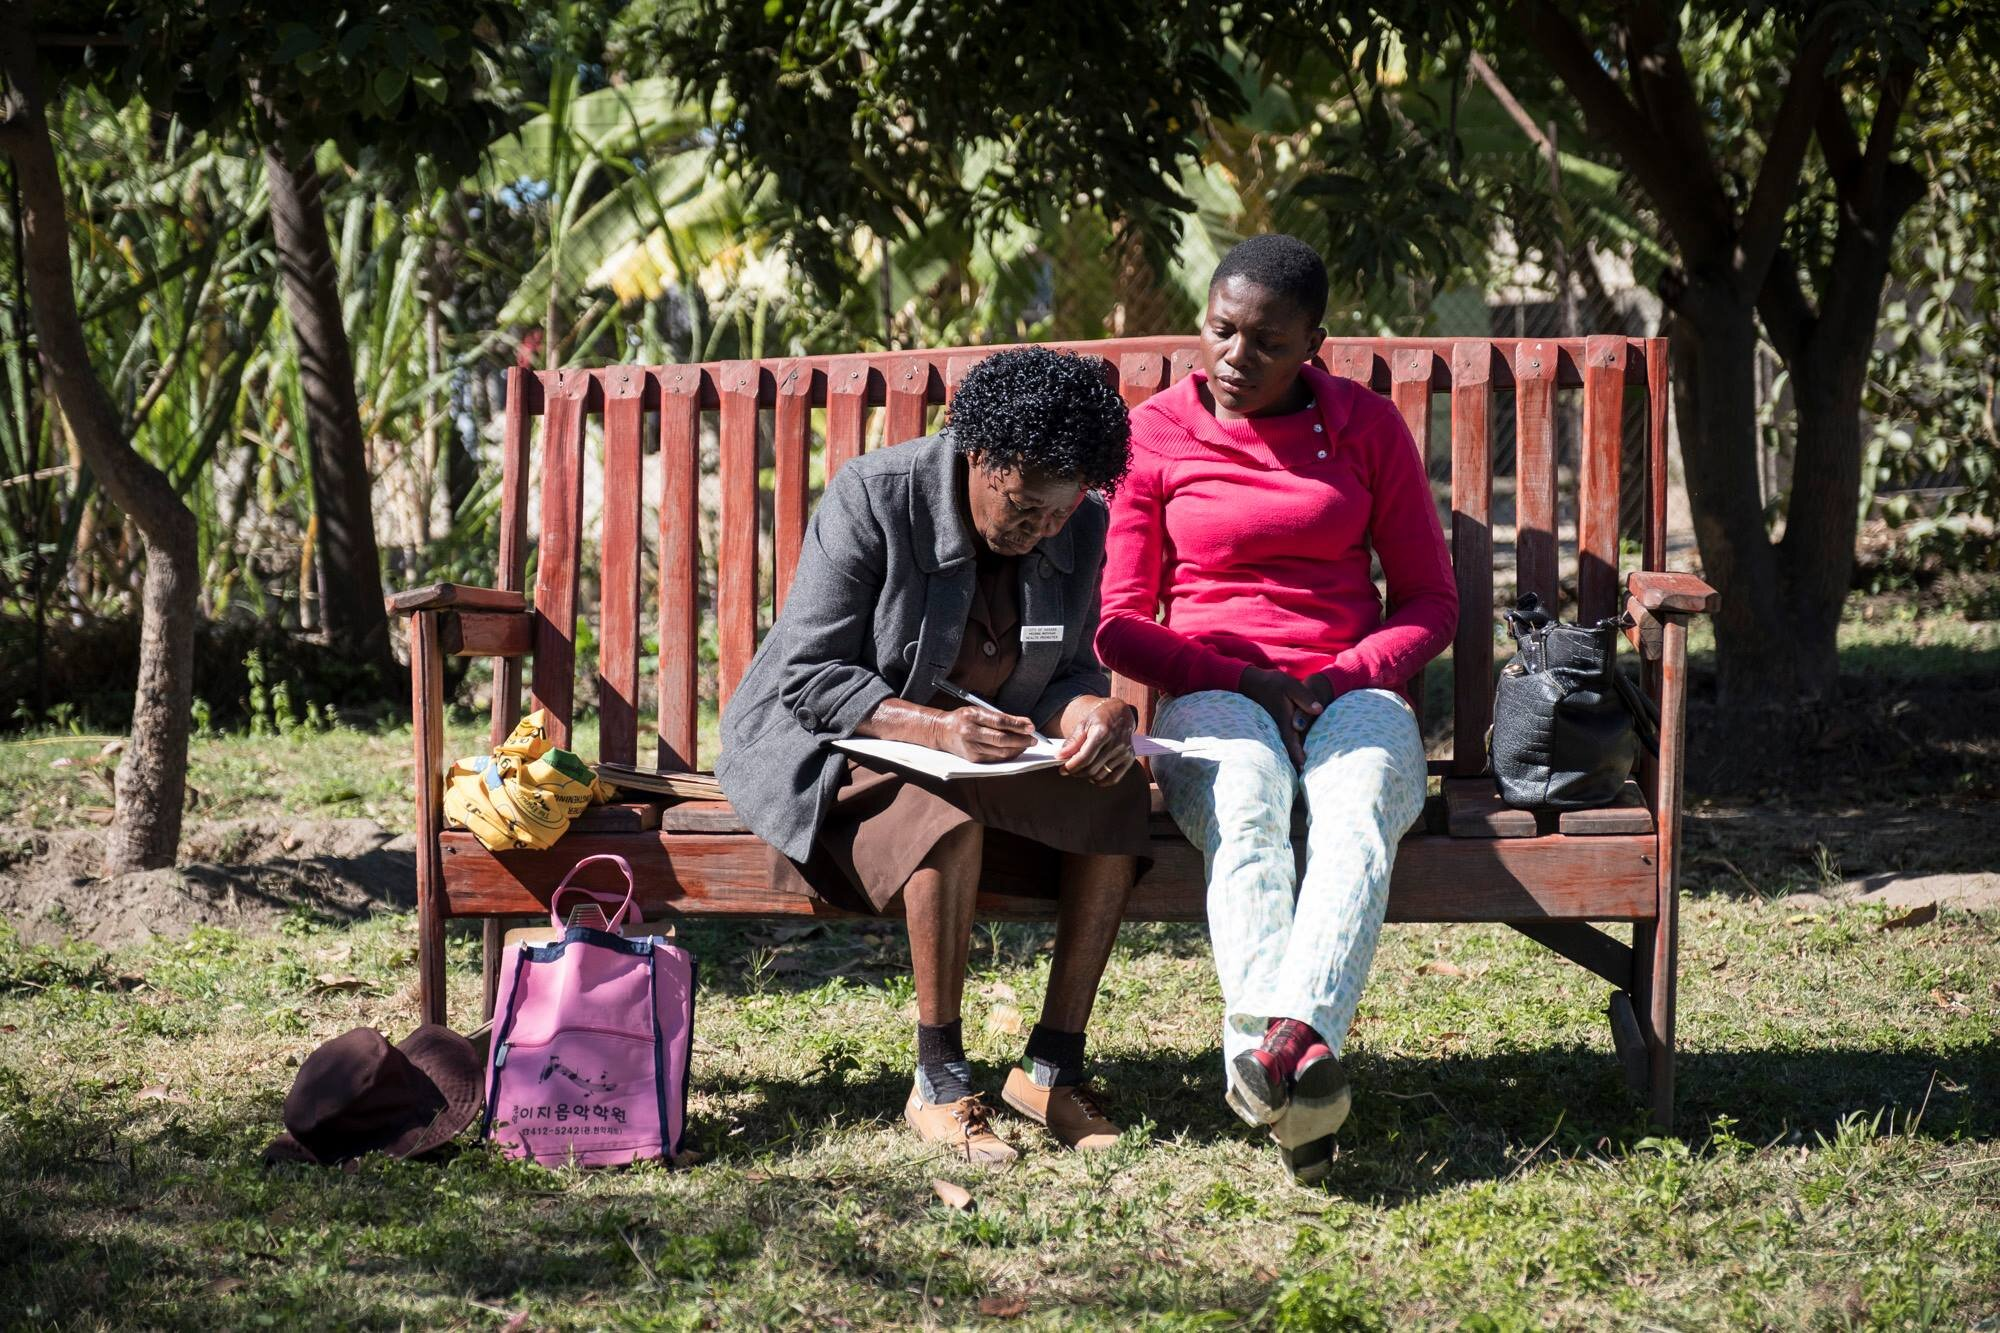 A trained grandmother is helping a patient on the friendship bench